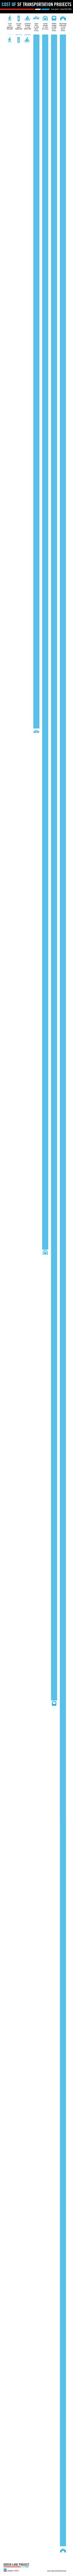 here's a way to visualize how much cheaper 1 mile of protected bike lane is compared to 1 mile of roadway: